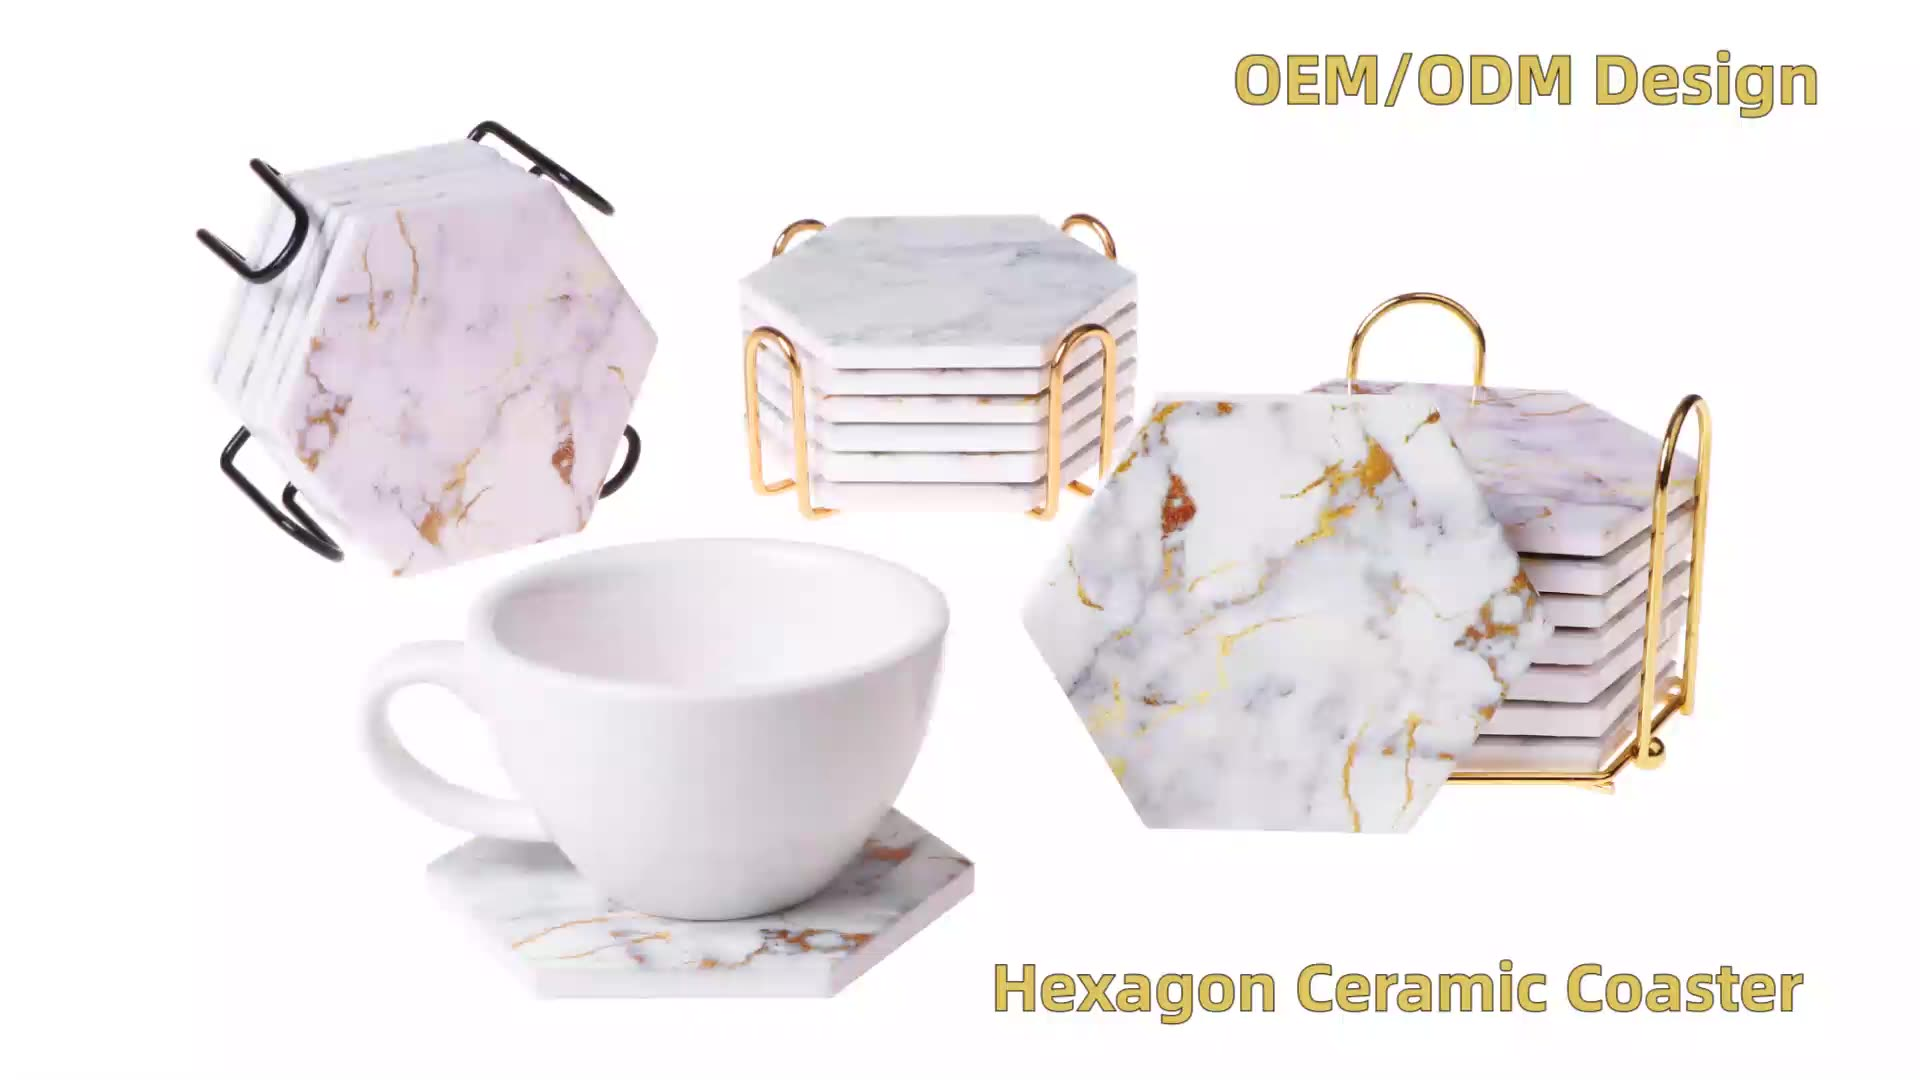 OEM/ODM kitchen mats&pads heat resistant ceramic coasters marble design hexagon coaster with cork back